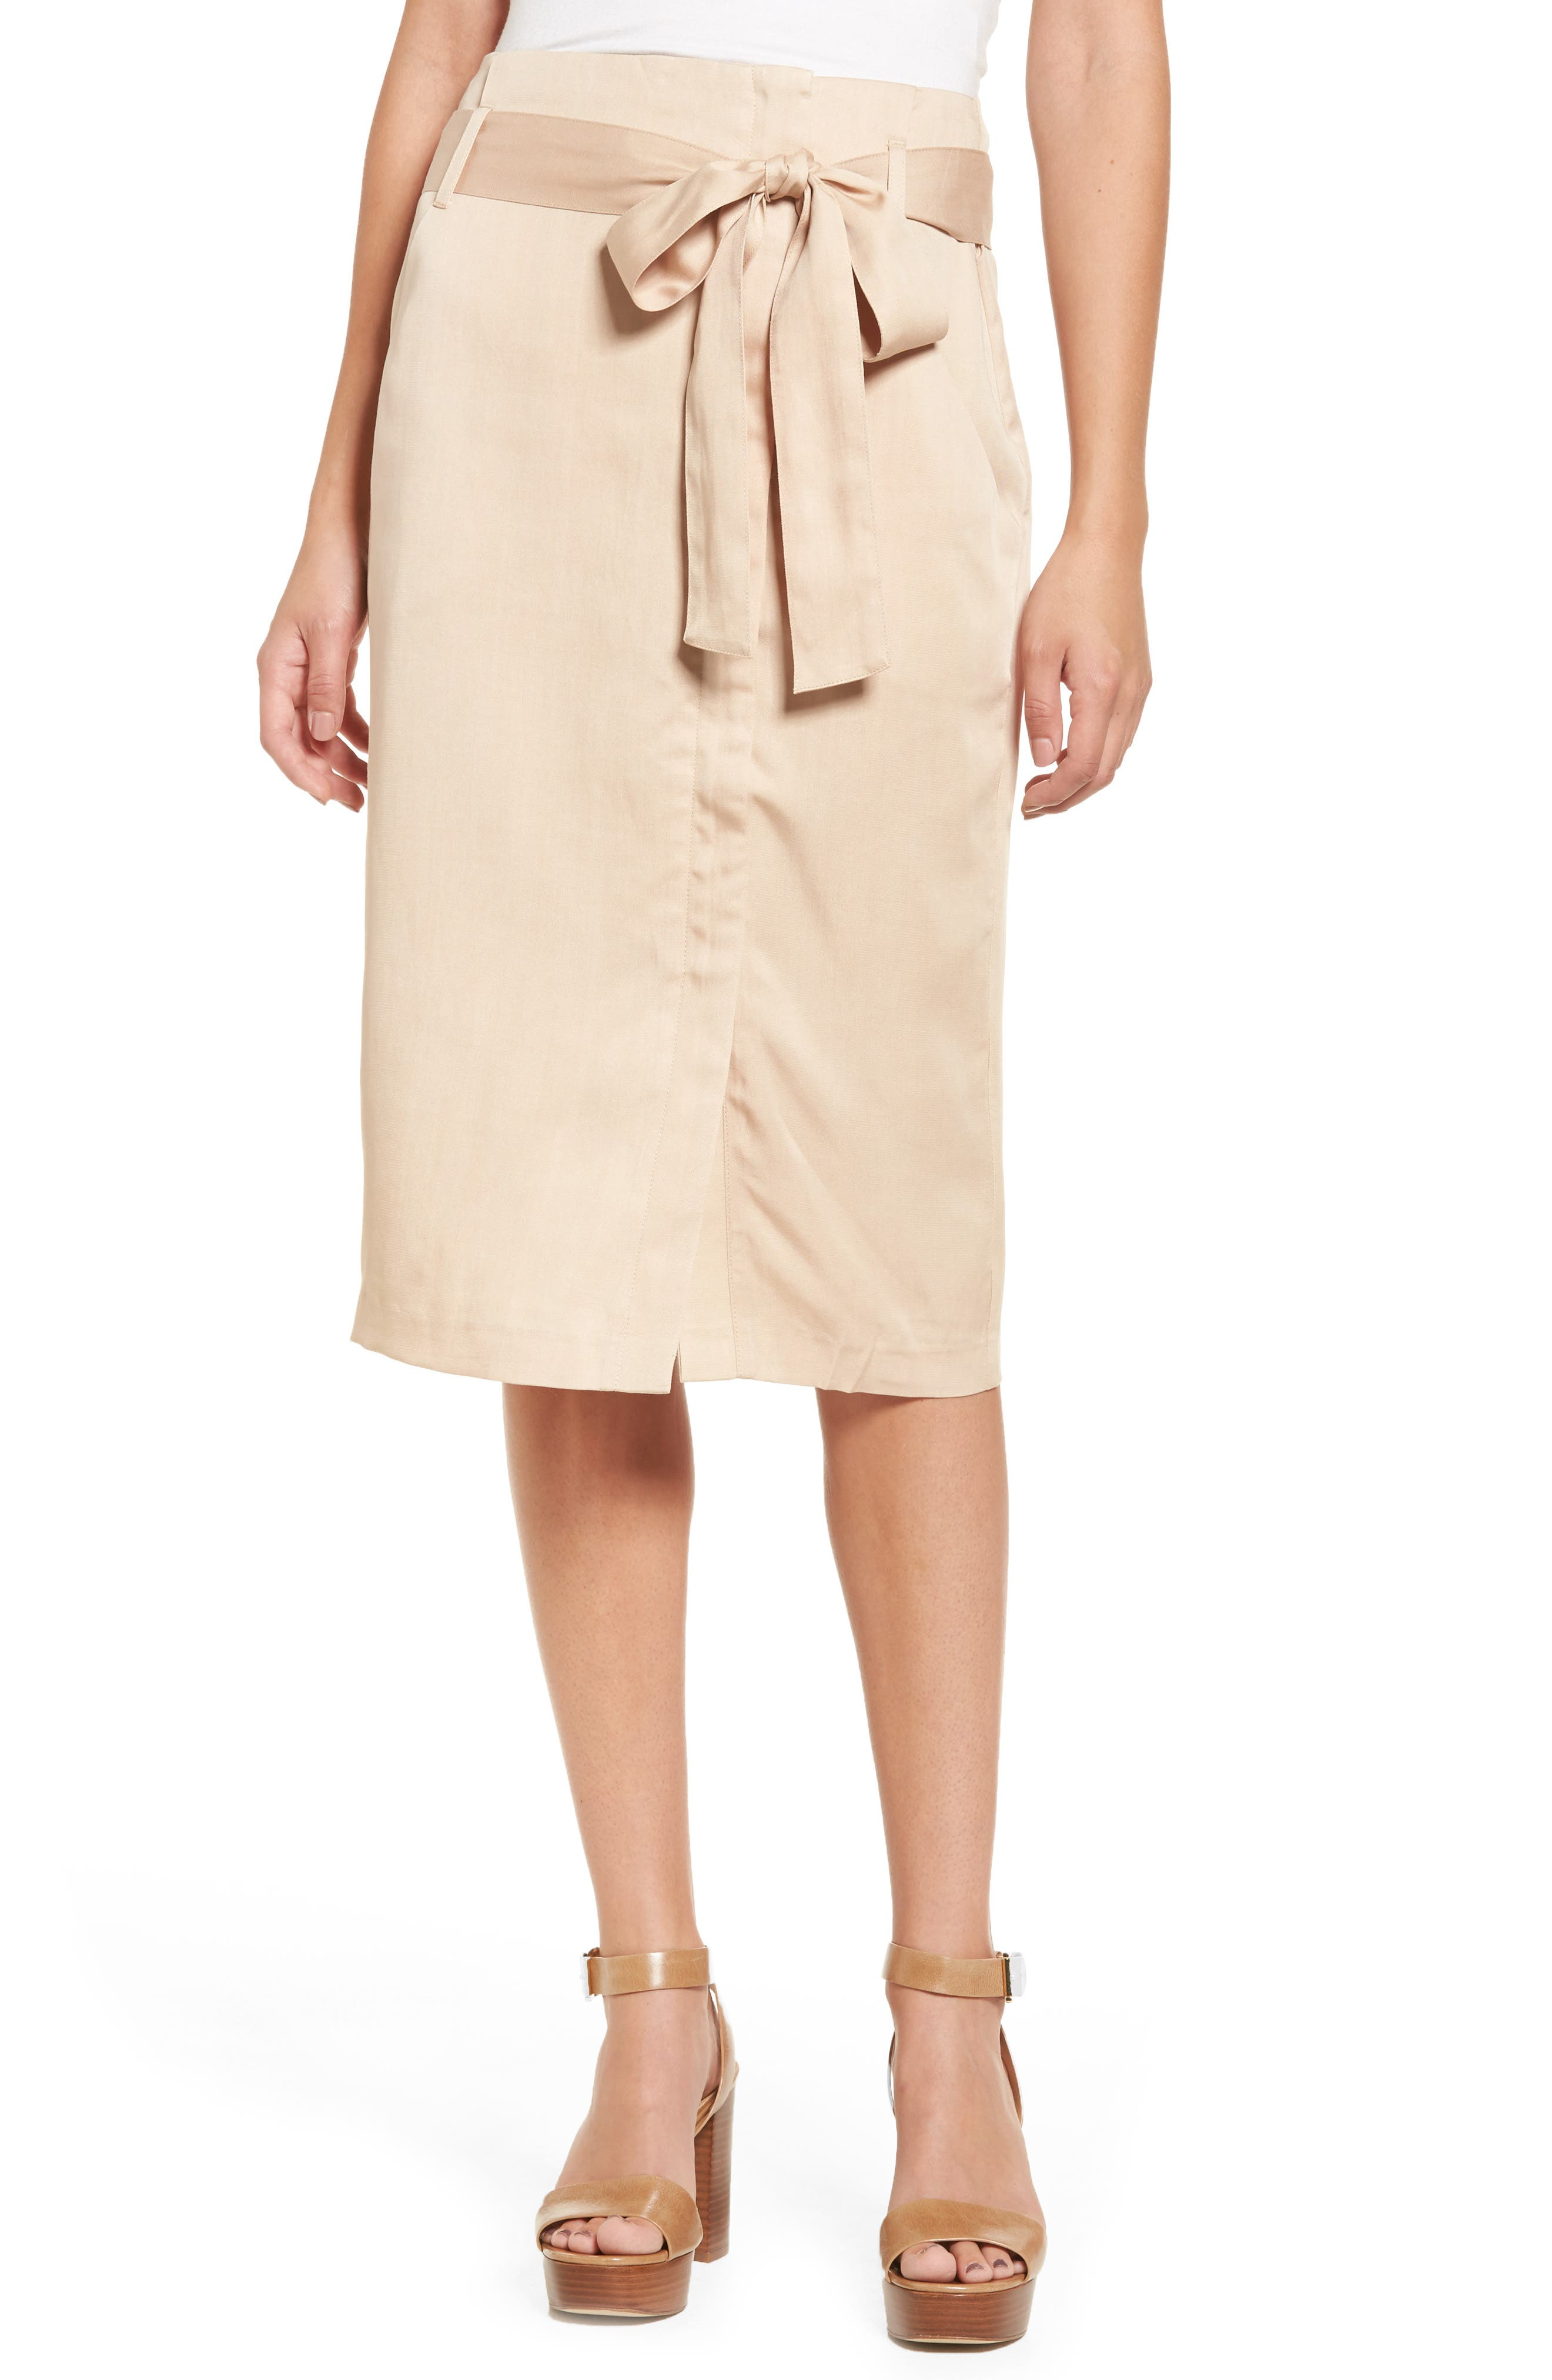 Alternate Image 1 Selected - Moon River Tie Waist Pencil Skirt